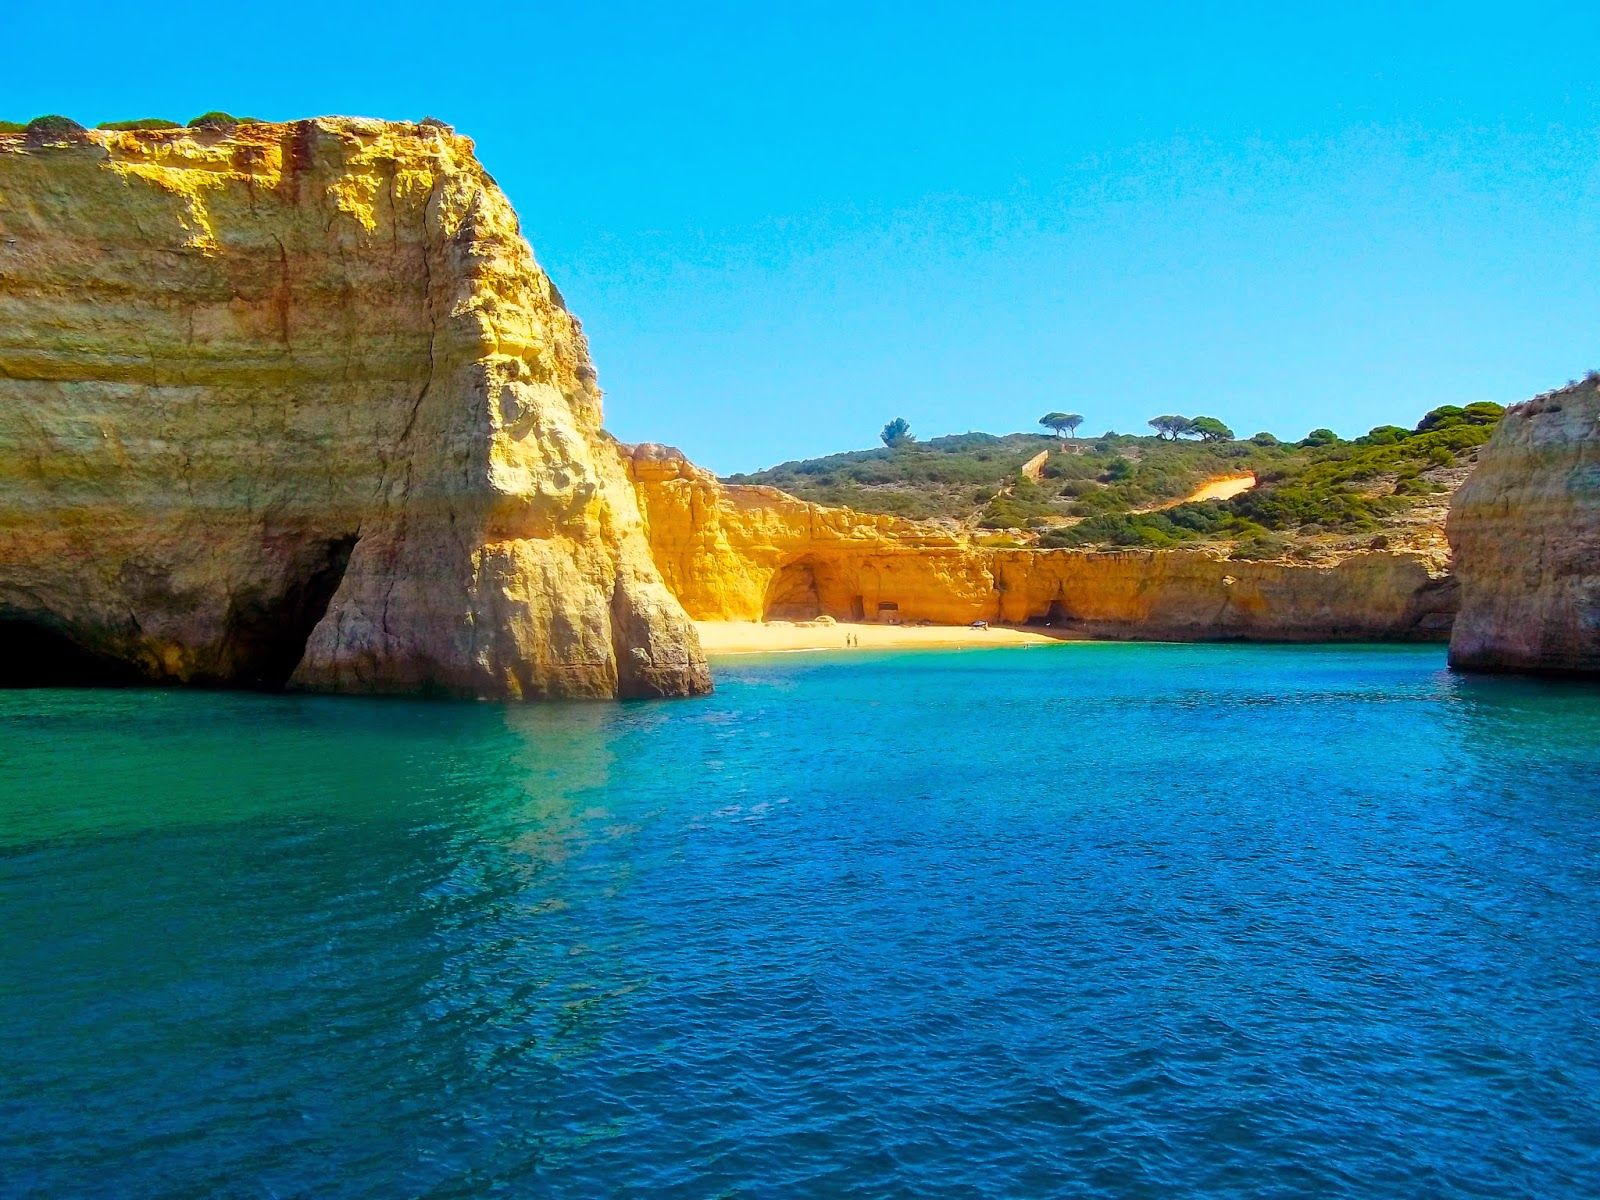 Time To Relax - Why You Should Visit The Algarve | Via Travel.Food.Film | 11.10.2014 - Known for it's clear blue sea and stunning white sandy beaches, The Algarve in Portugal is one of the best holiday destinations in all of Europe. Perfect for anyone who wants a relaxing week away from it all. The stunning Algarve is the place I go when I need to just sit back and relax in a stunning setting.  #Portugal